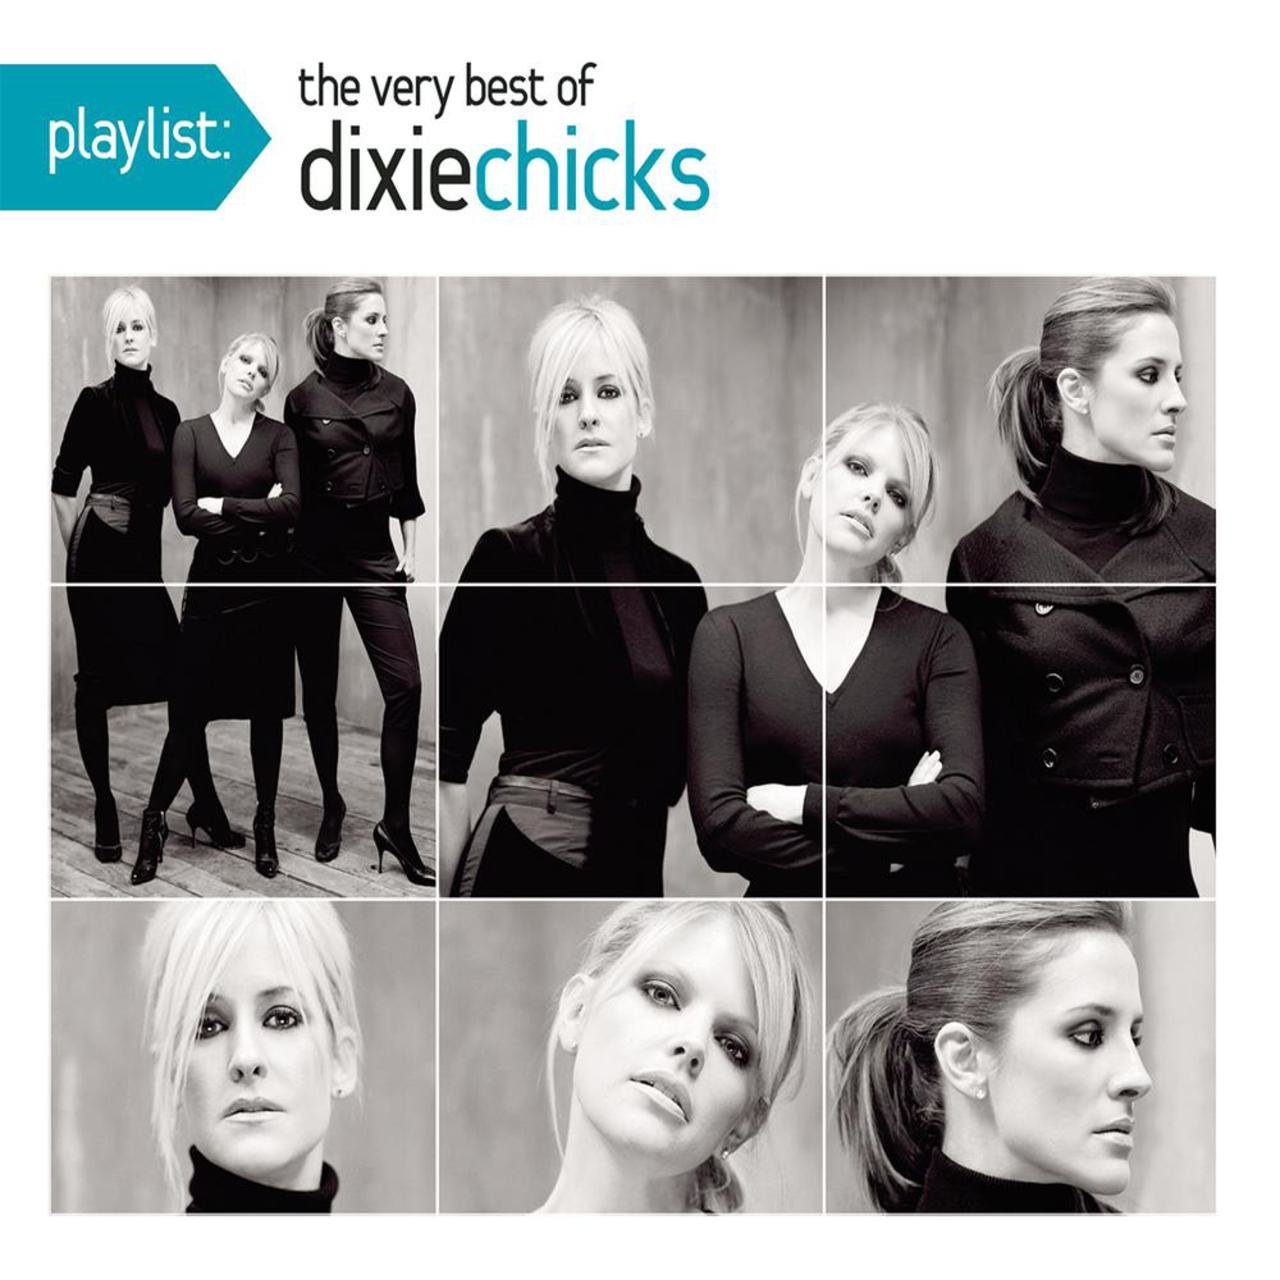 Dixie Chicks - Playlist: The Very Best Of The Dixie Chicks (2011)